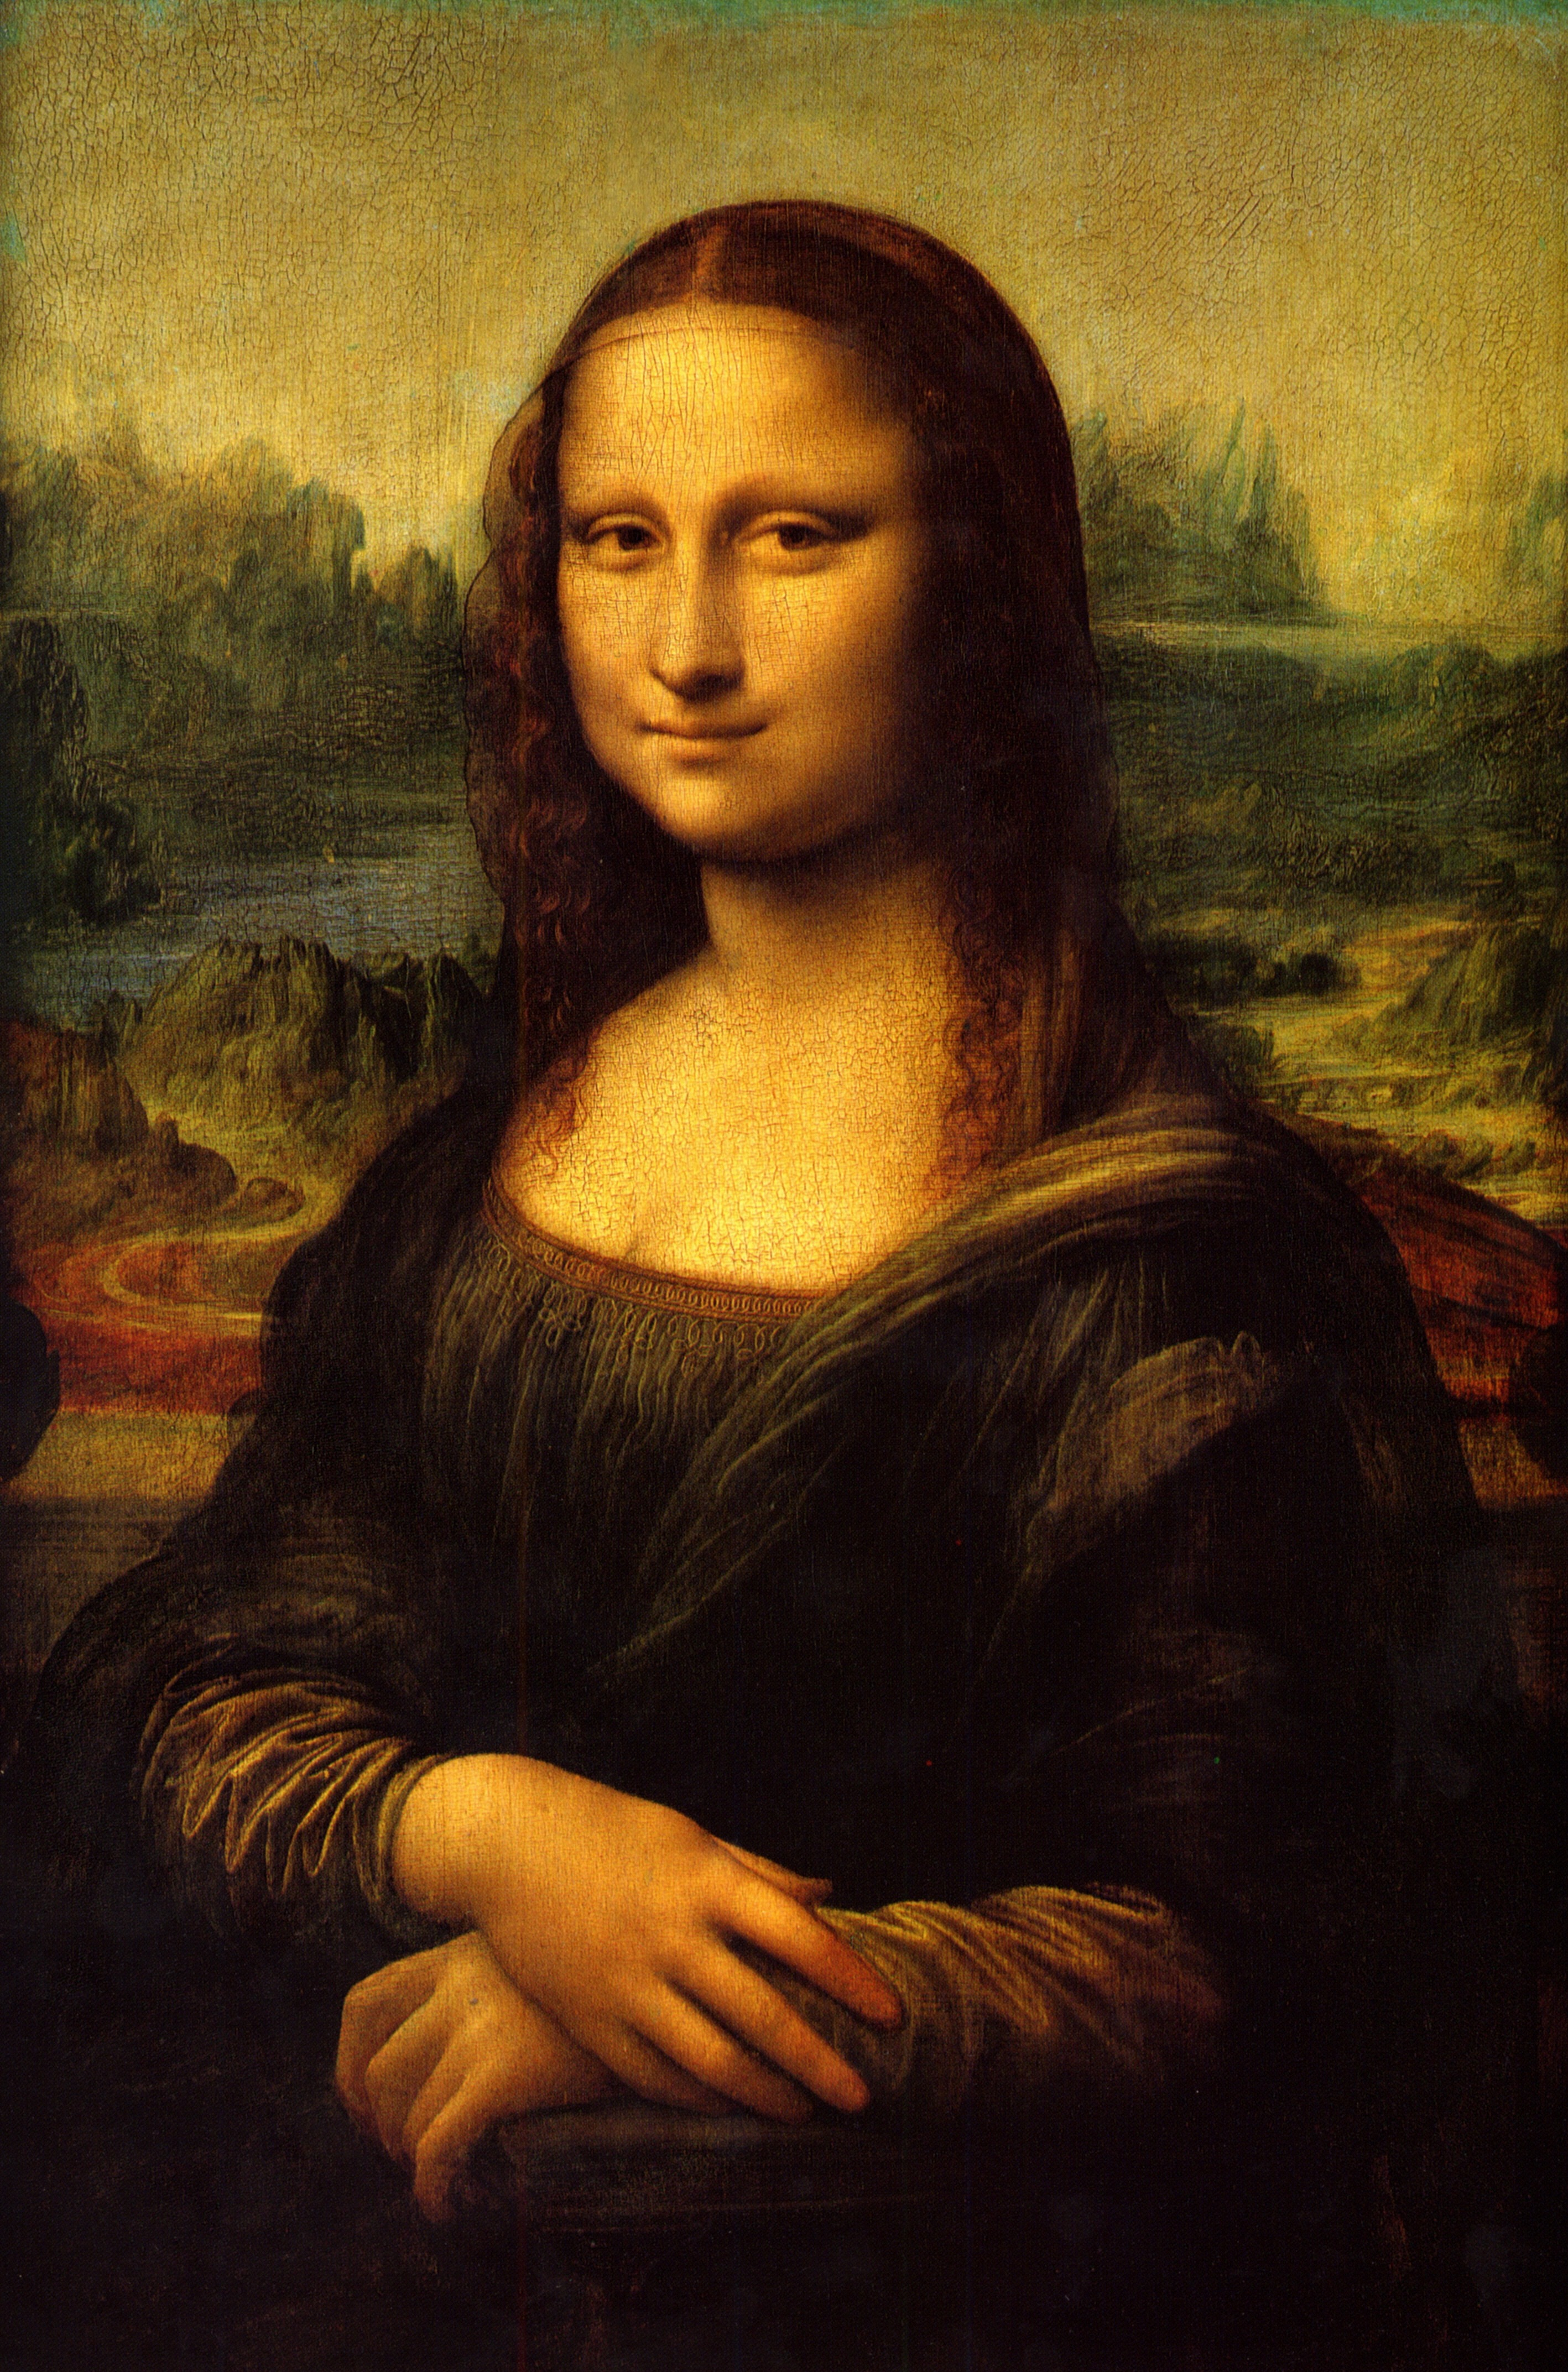 Want to know a Renaissance secret? Da Vinci worked on the Mona Lisa for years, but he never quite finished it to his own satisfaction. (Just don't tell the 7 million visitors who go see the Mona Lisa in the Louvre Museum in Paris every year.) (Image via Wikipedia)